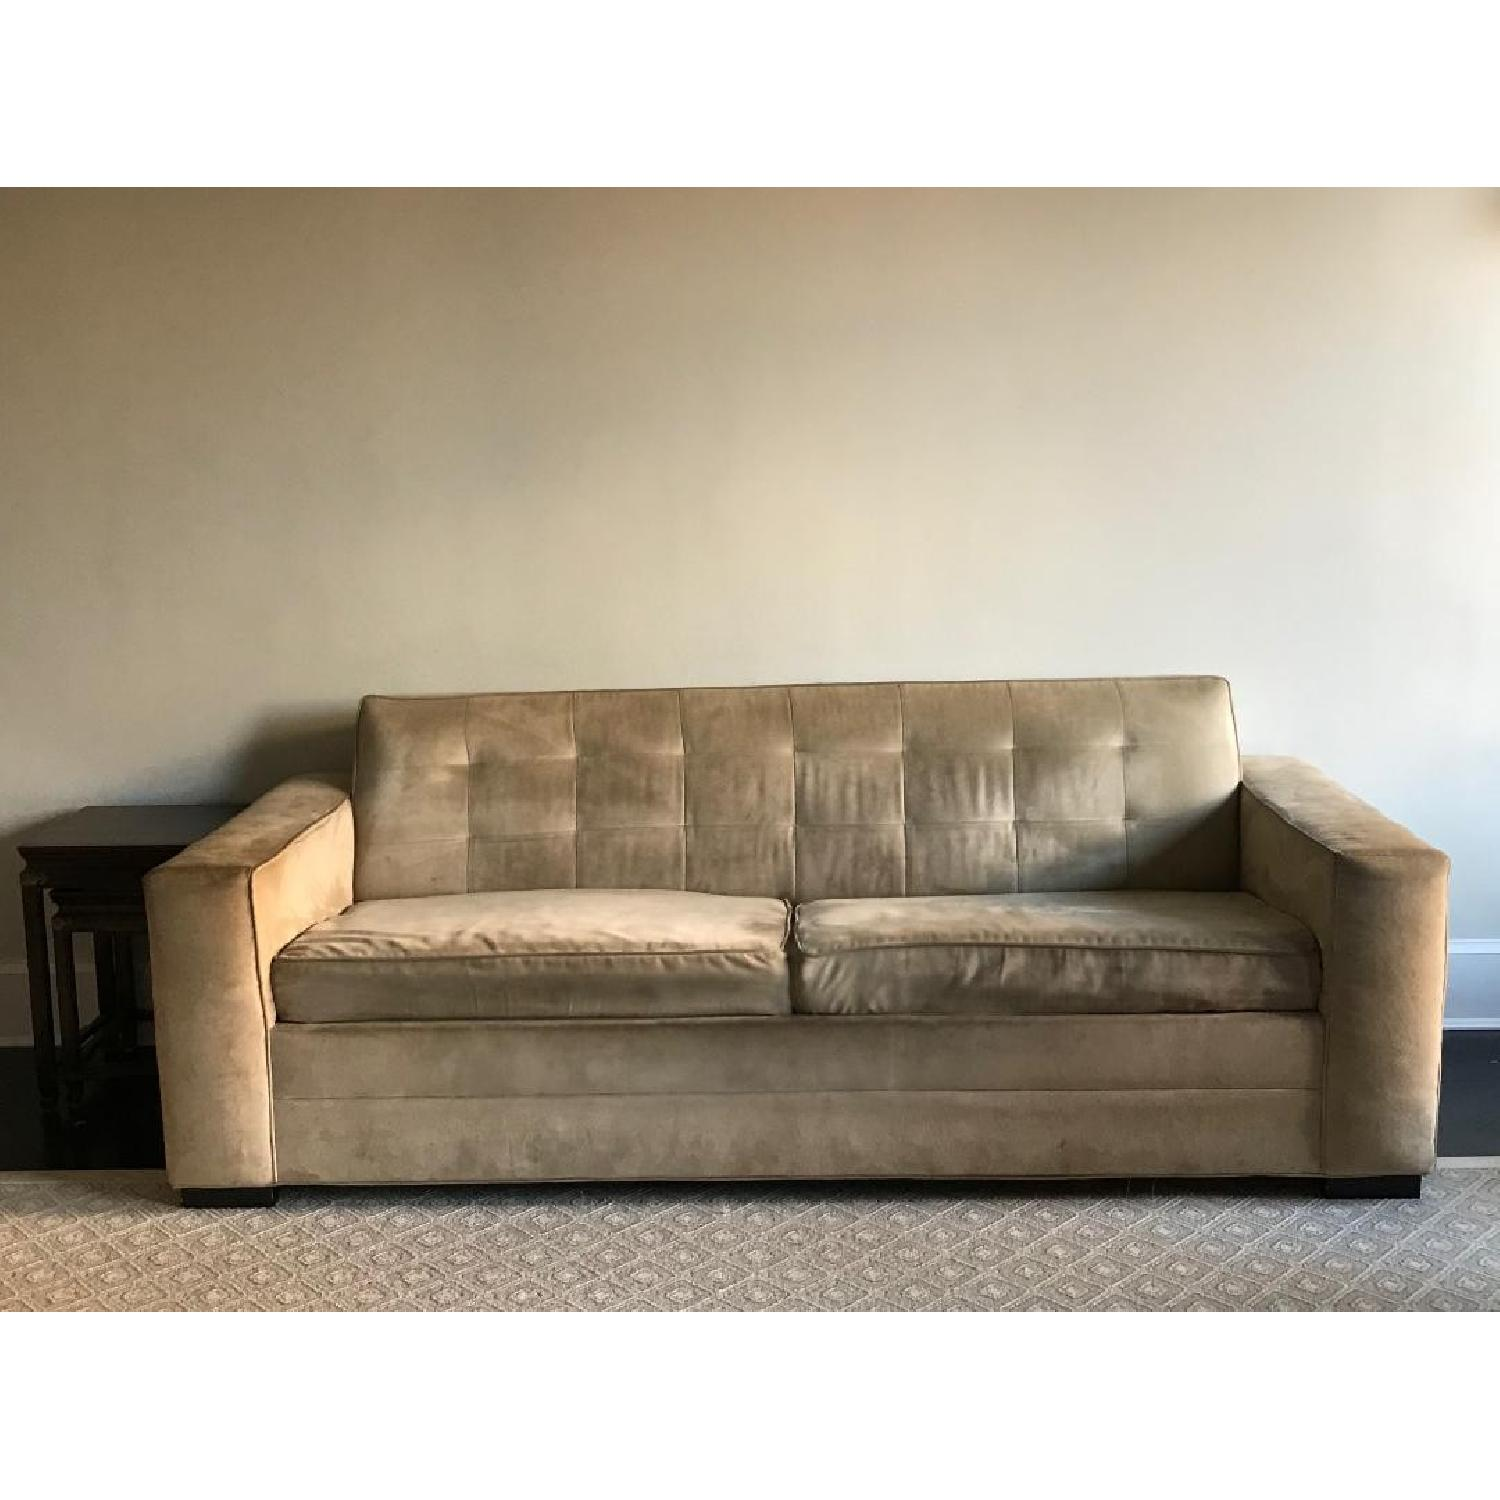 boconcept sleeper sofa review simmons bordeaux mitchell gold + bob williams - aptdeco